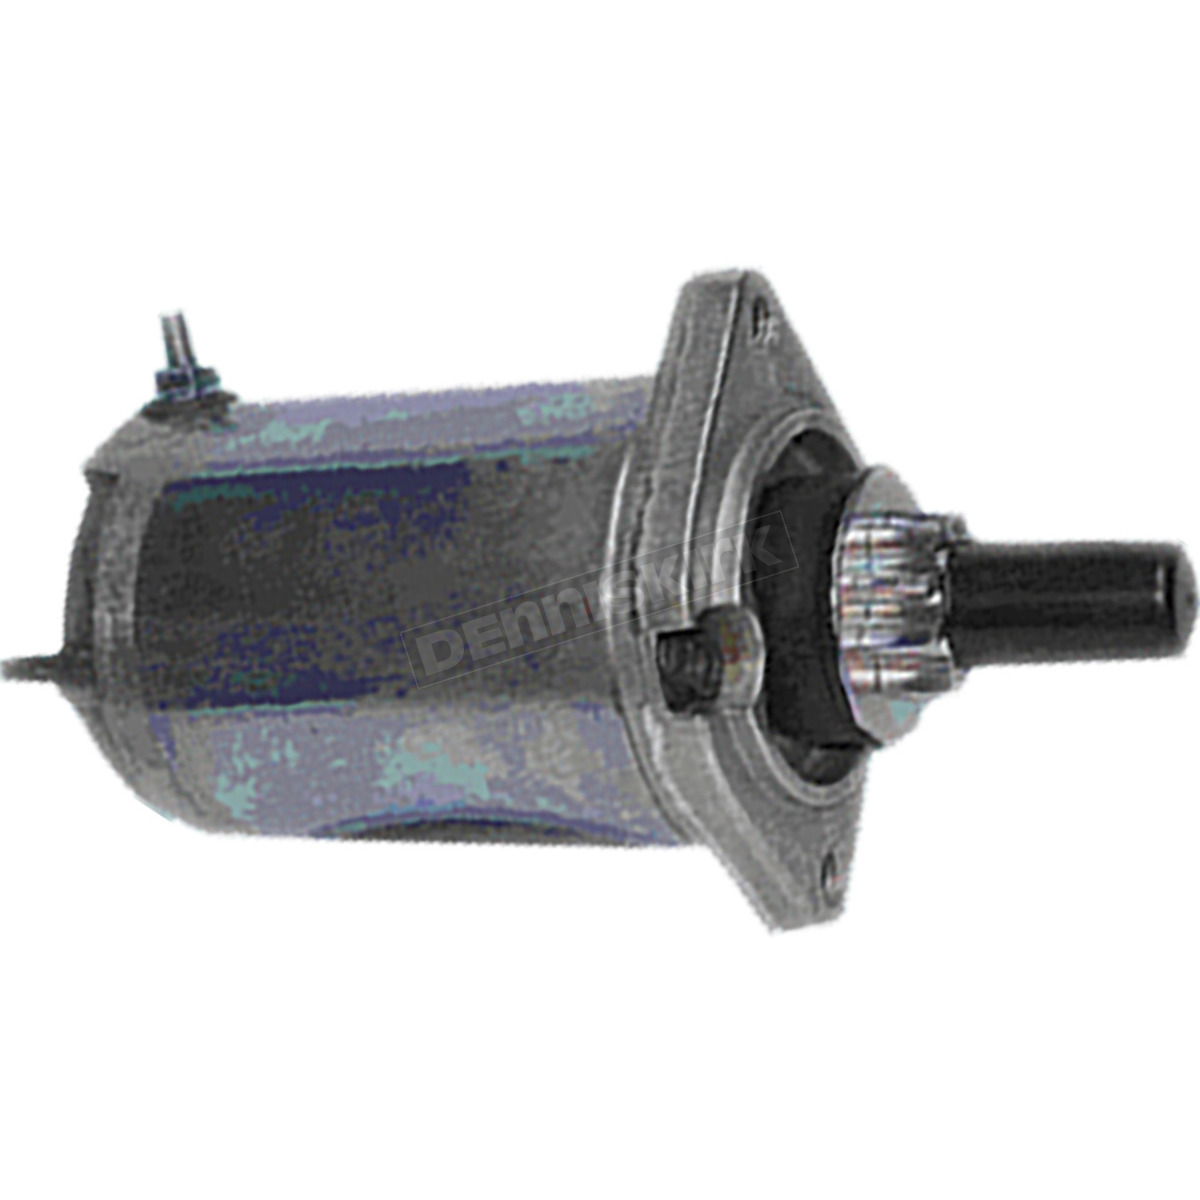 Sports parts inc starter motor sm 01204 snowmobile for Nhd inc motor starter